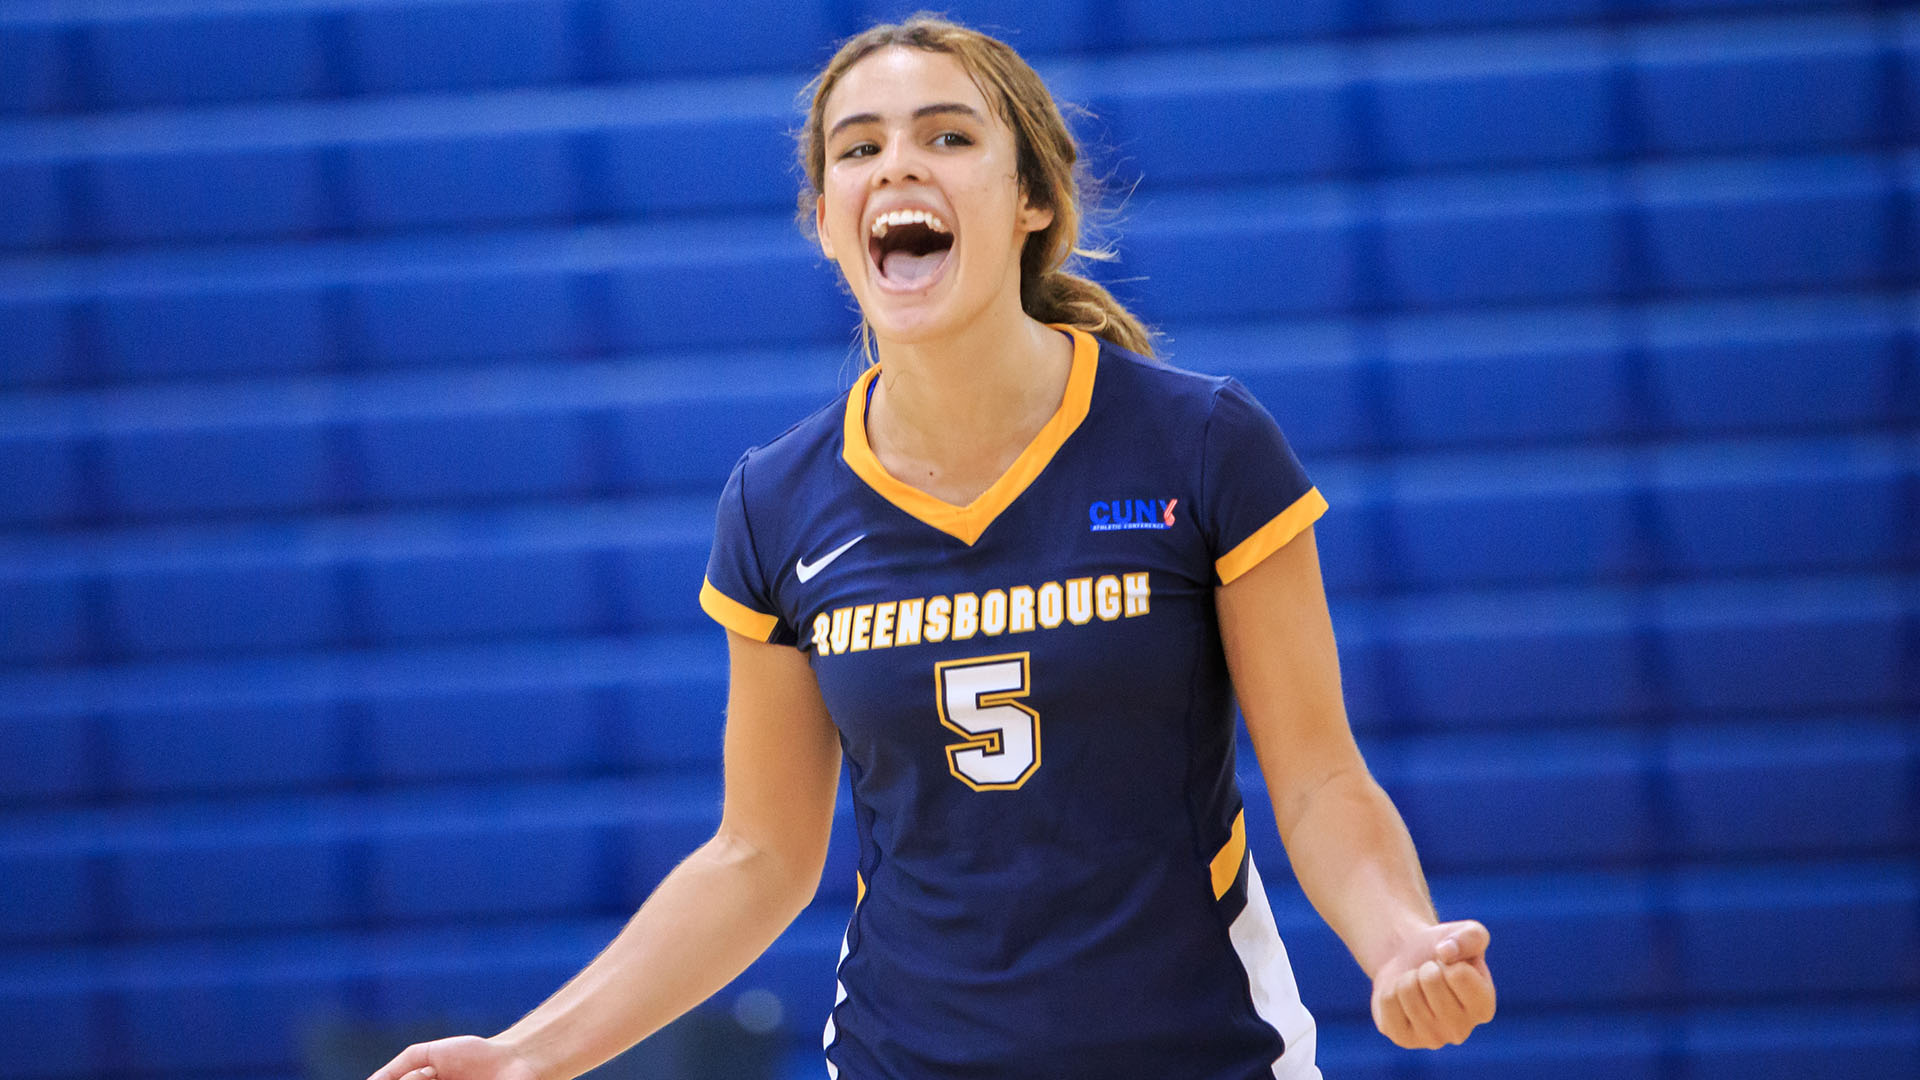 CUNYAC/Pepsi Community College Women's Volleyball Report - Week 1